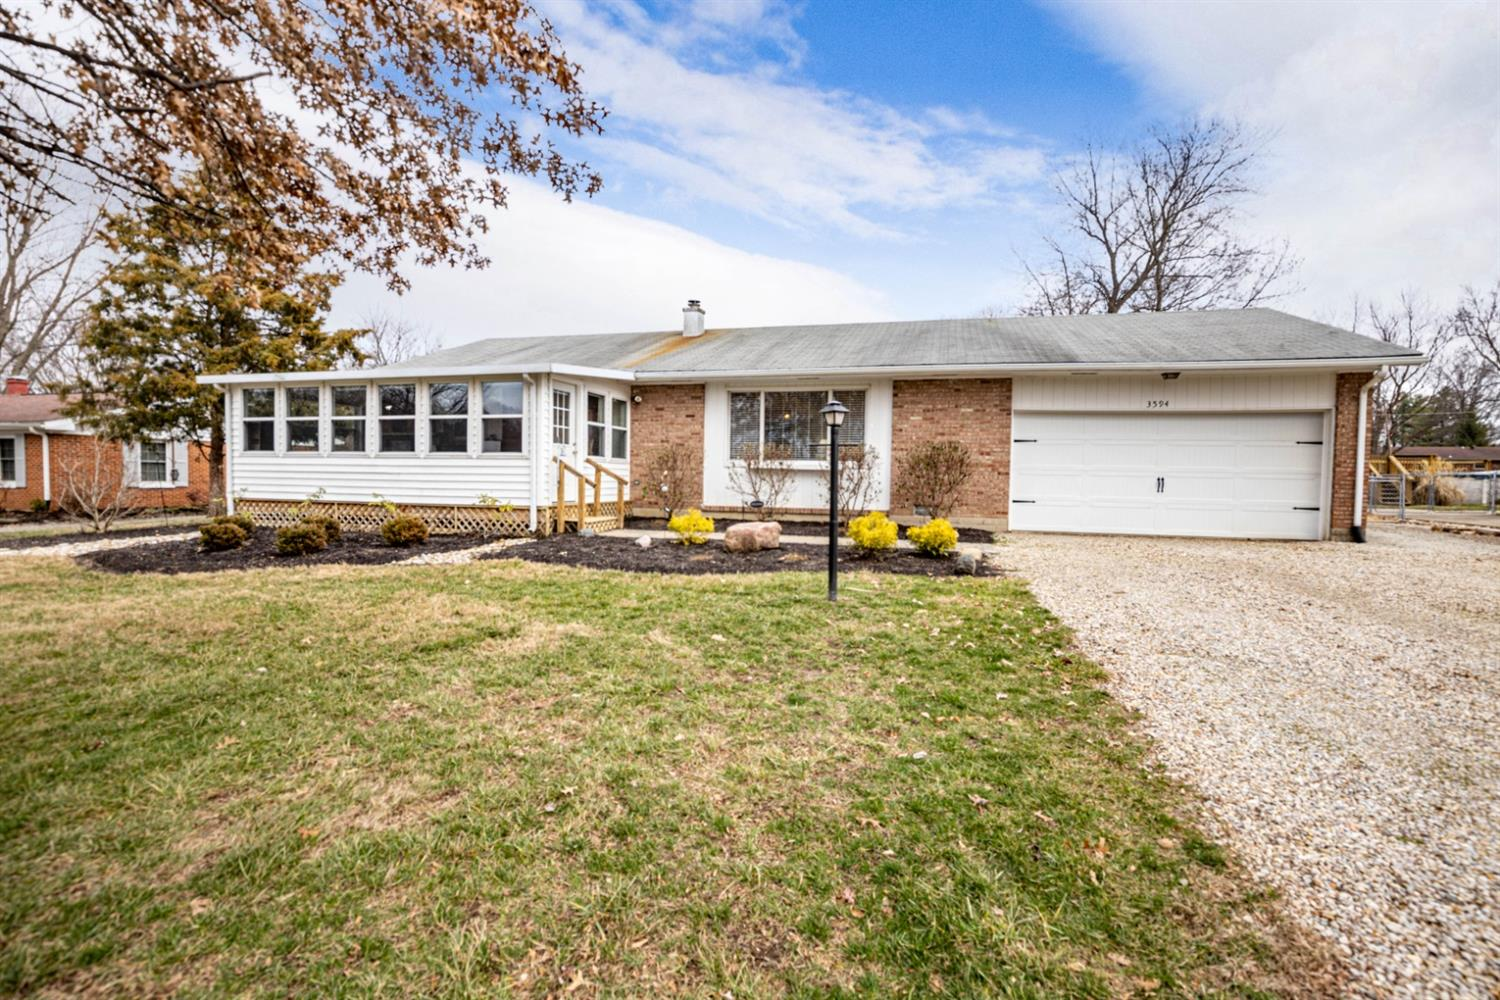 3594 Crestview Ave Clearcreek Twp. OH